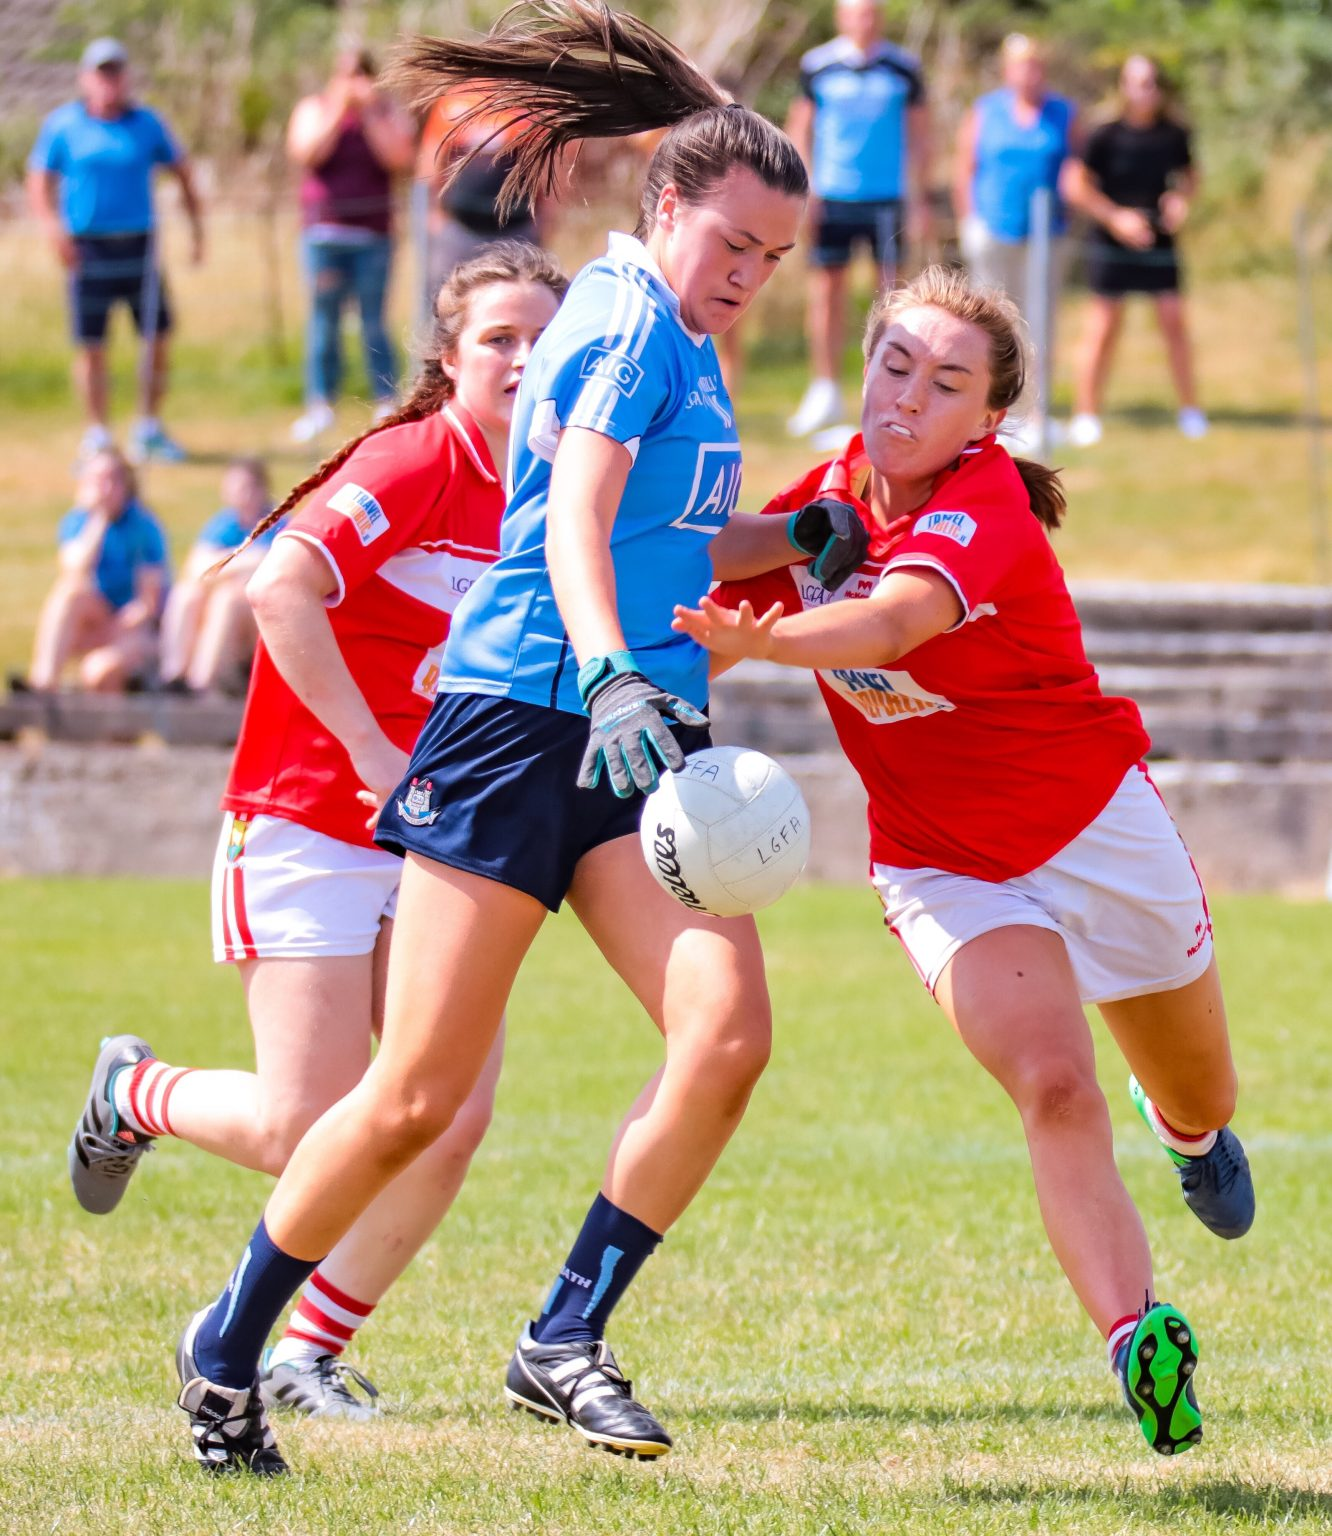 Dublin Player in a sky blue jersey is tackled by a Cork Minor Ladies Footballer in a red jersey